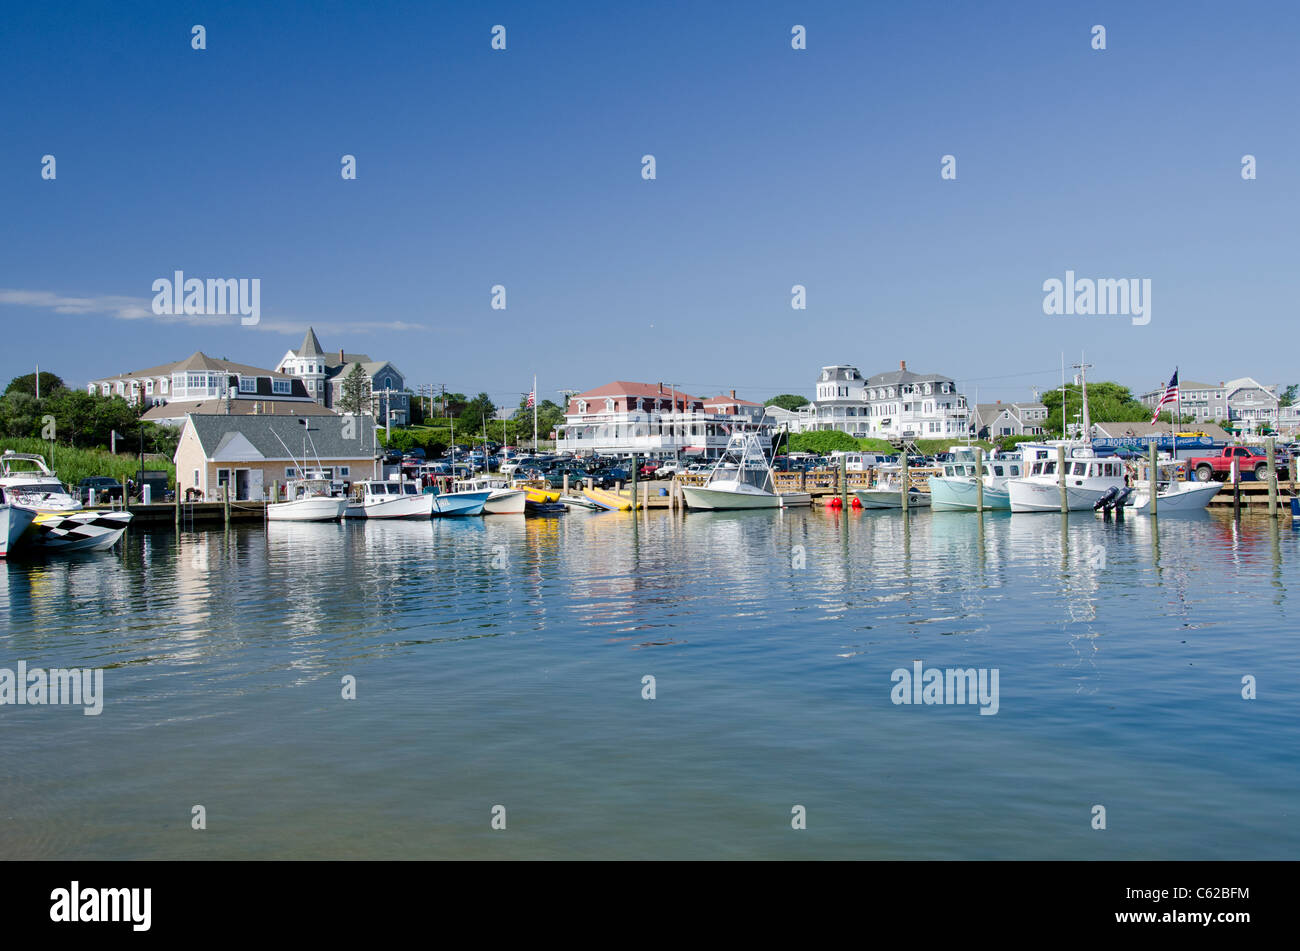 Rhode Island, Block Island (aka New Shoreham). The scenic harbor area of downtown Block Island. - Stock Image